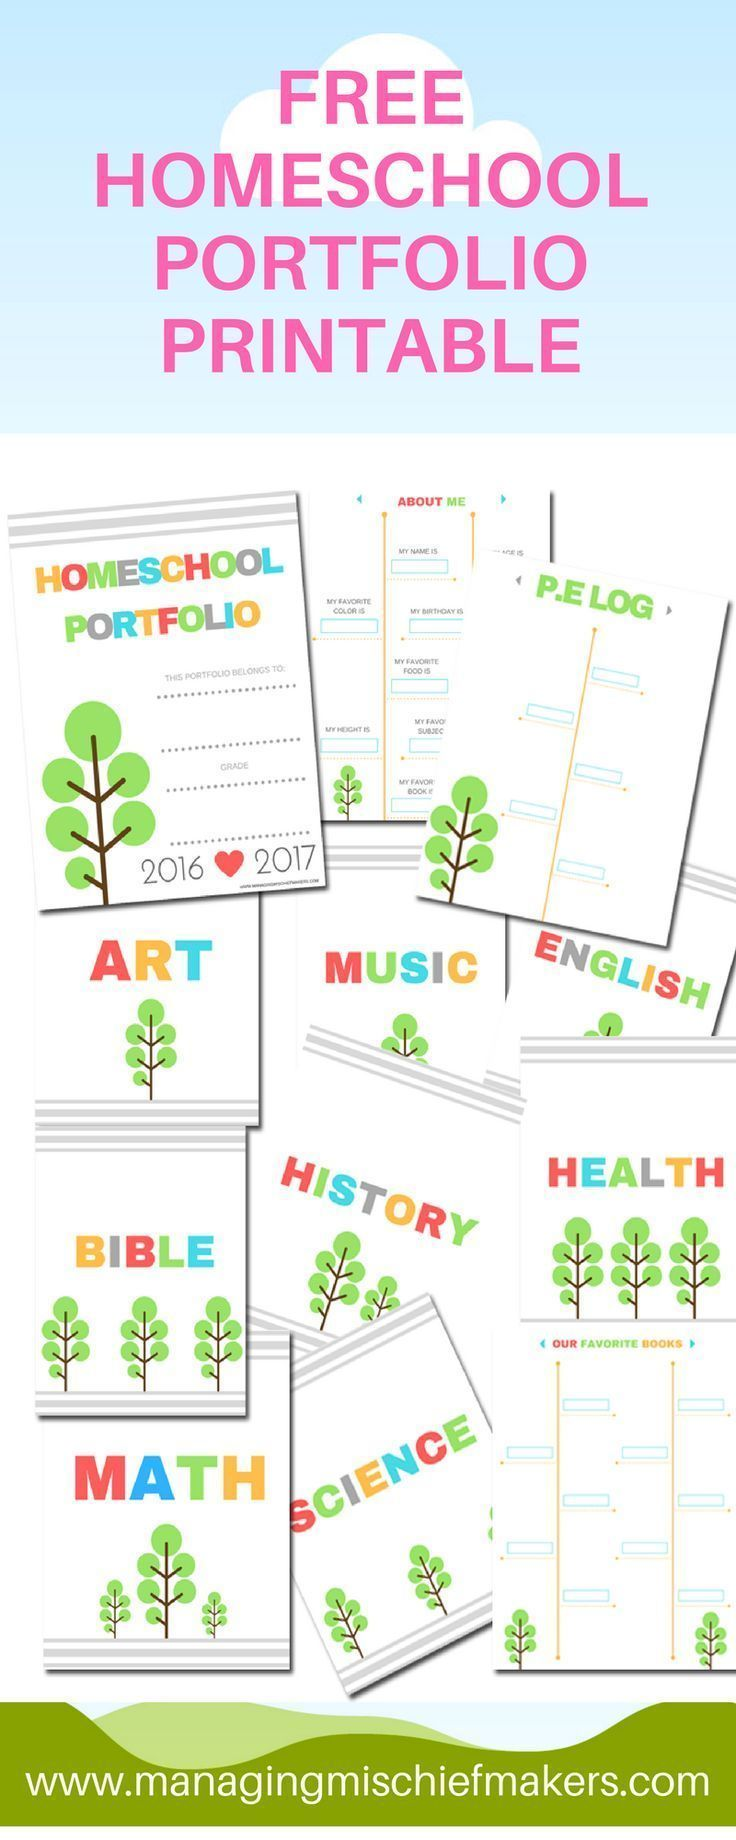 Tips for creating your homeschool portfolio along with a free printable.